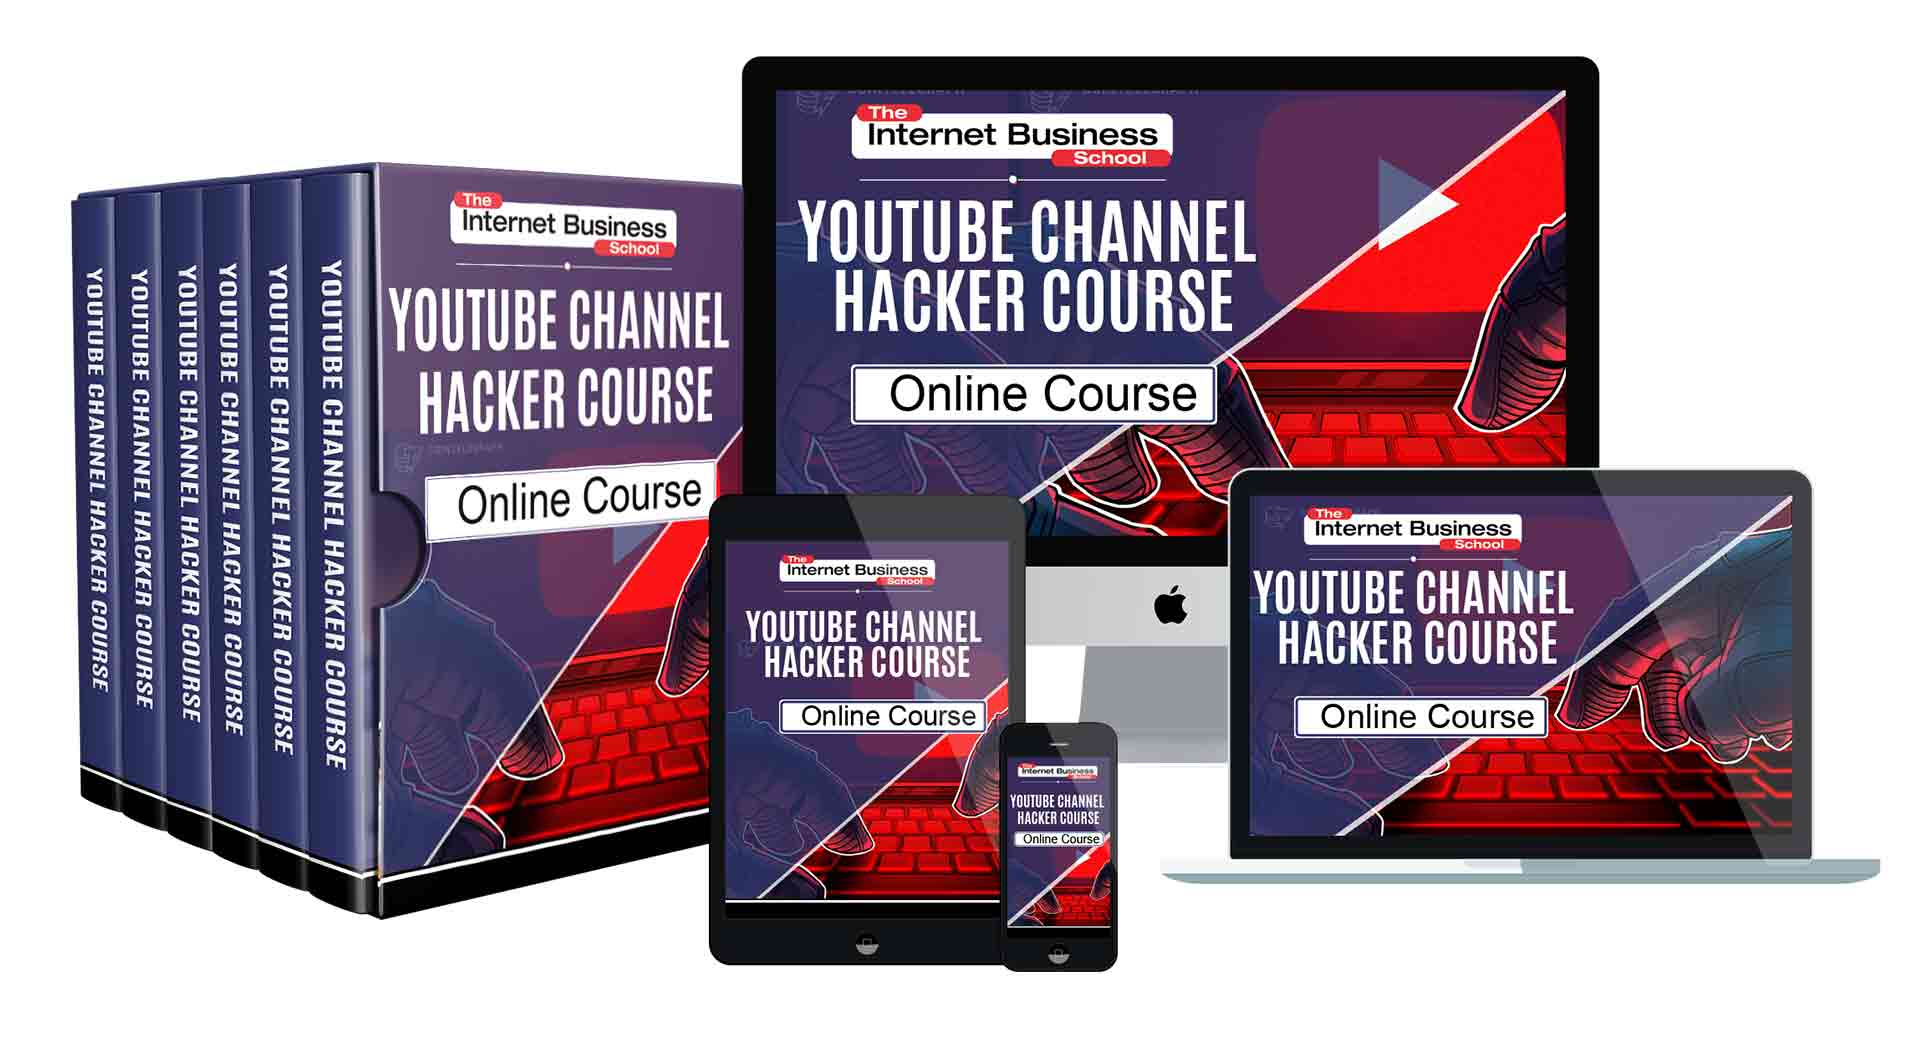 YouTube Channel Hacker Course - Cotswold Websites